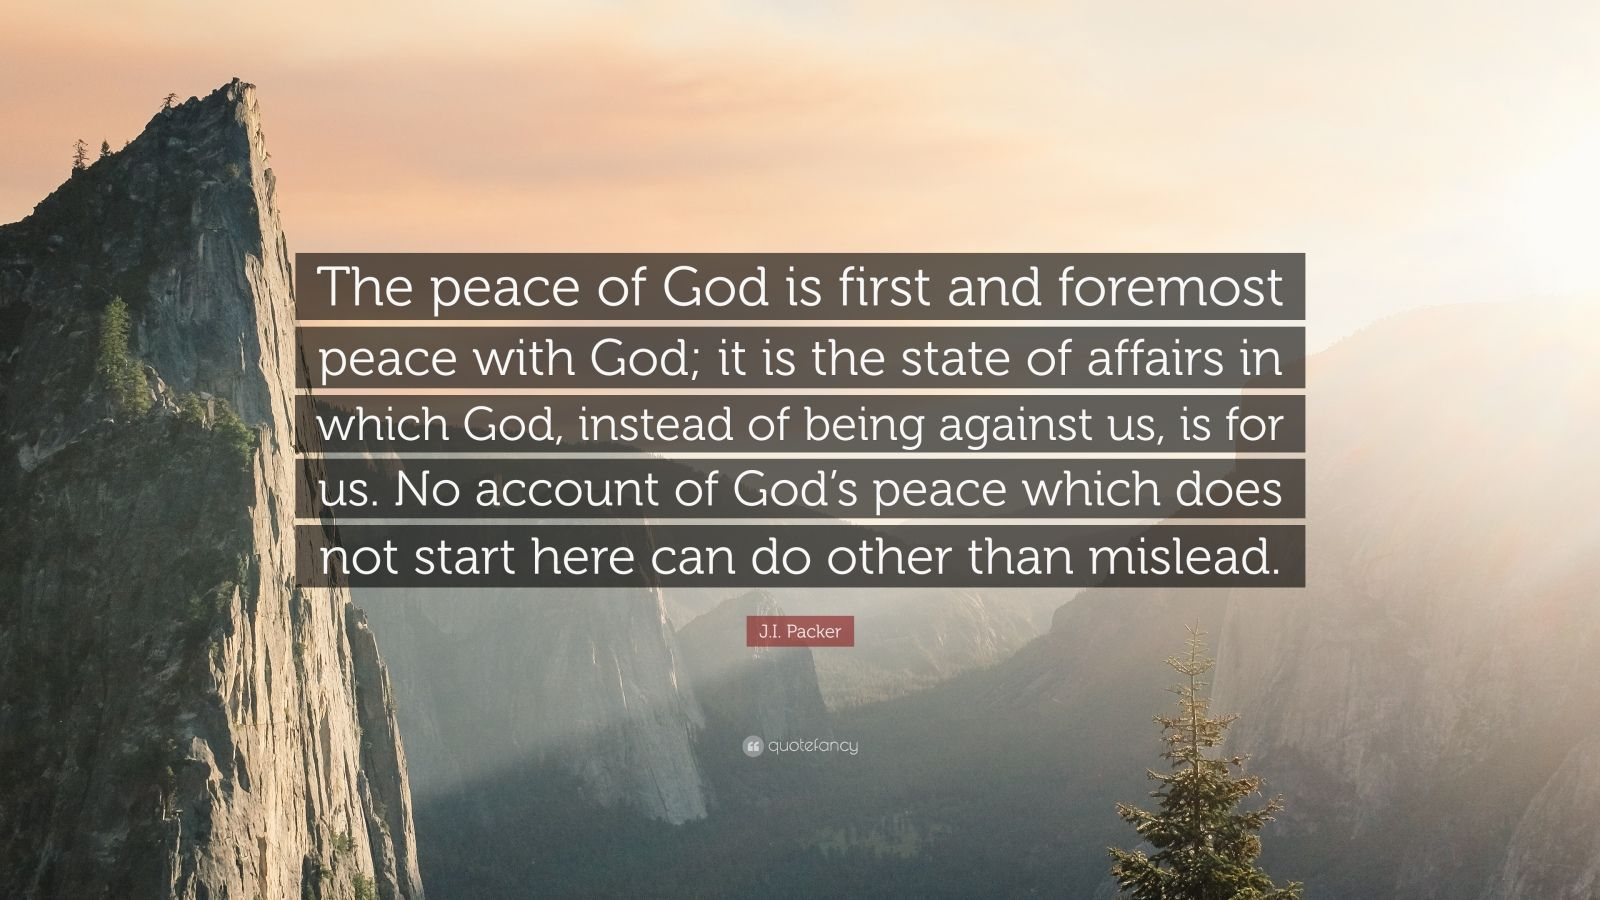 """J.I. Packer Quote: """"The peace of God is first and foremost peace with God; it is the state of affairs in which God, instead of being against us, is for us. No account of God's peace which does not start here can do other than mislead."""""""